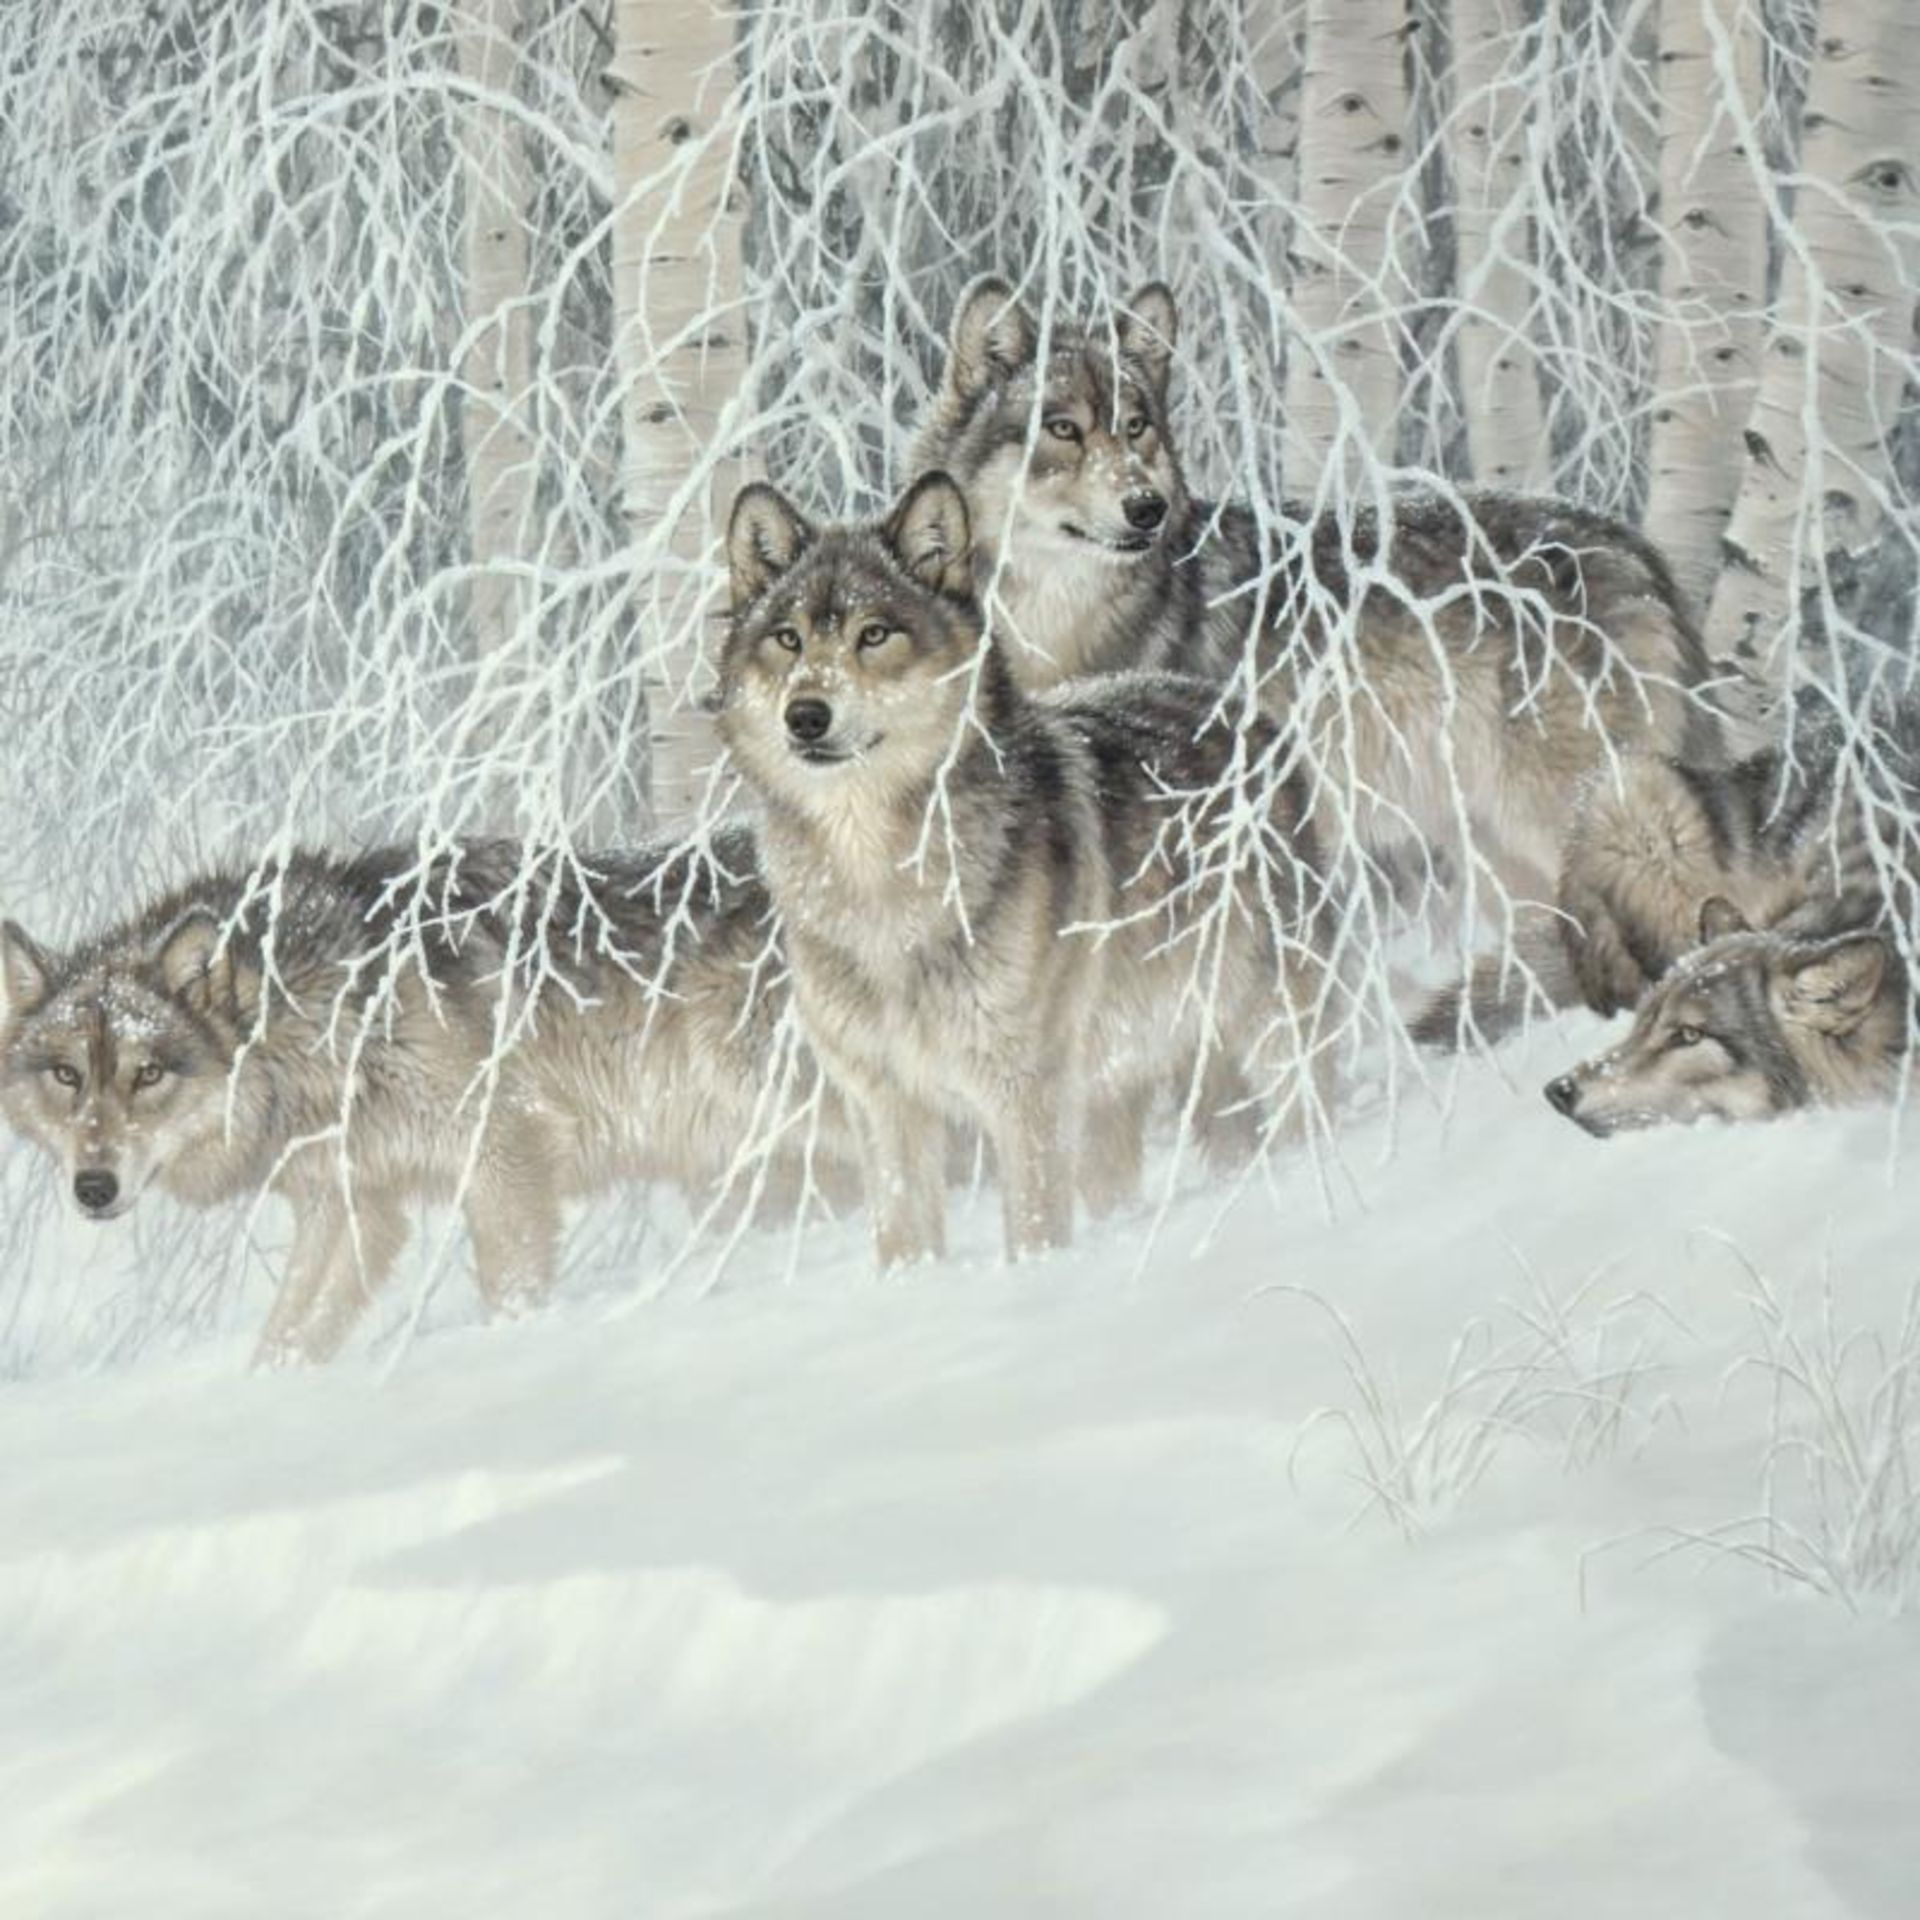 """Larry Fanning (1938-2014), """"Winter's Lace - Gray Wolves"""" Limited Edition Lithogr - Image 2 of 3"""